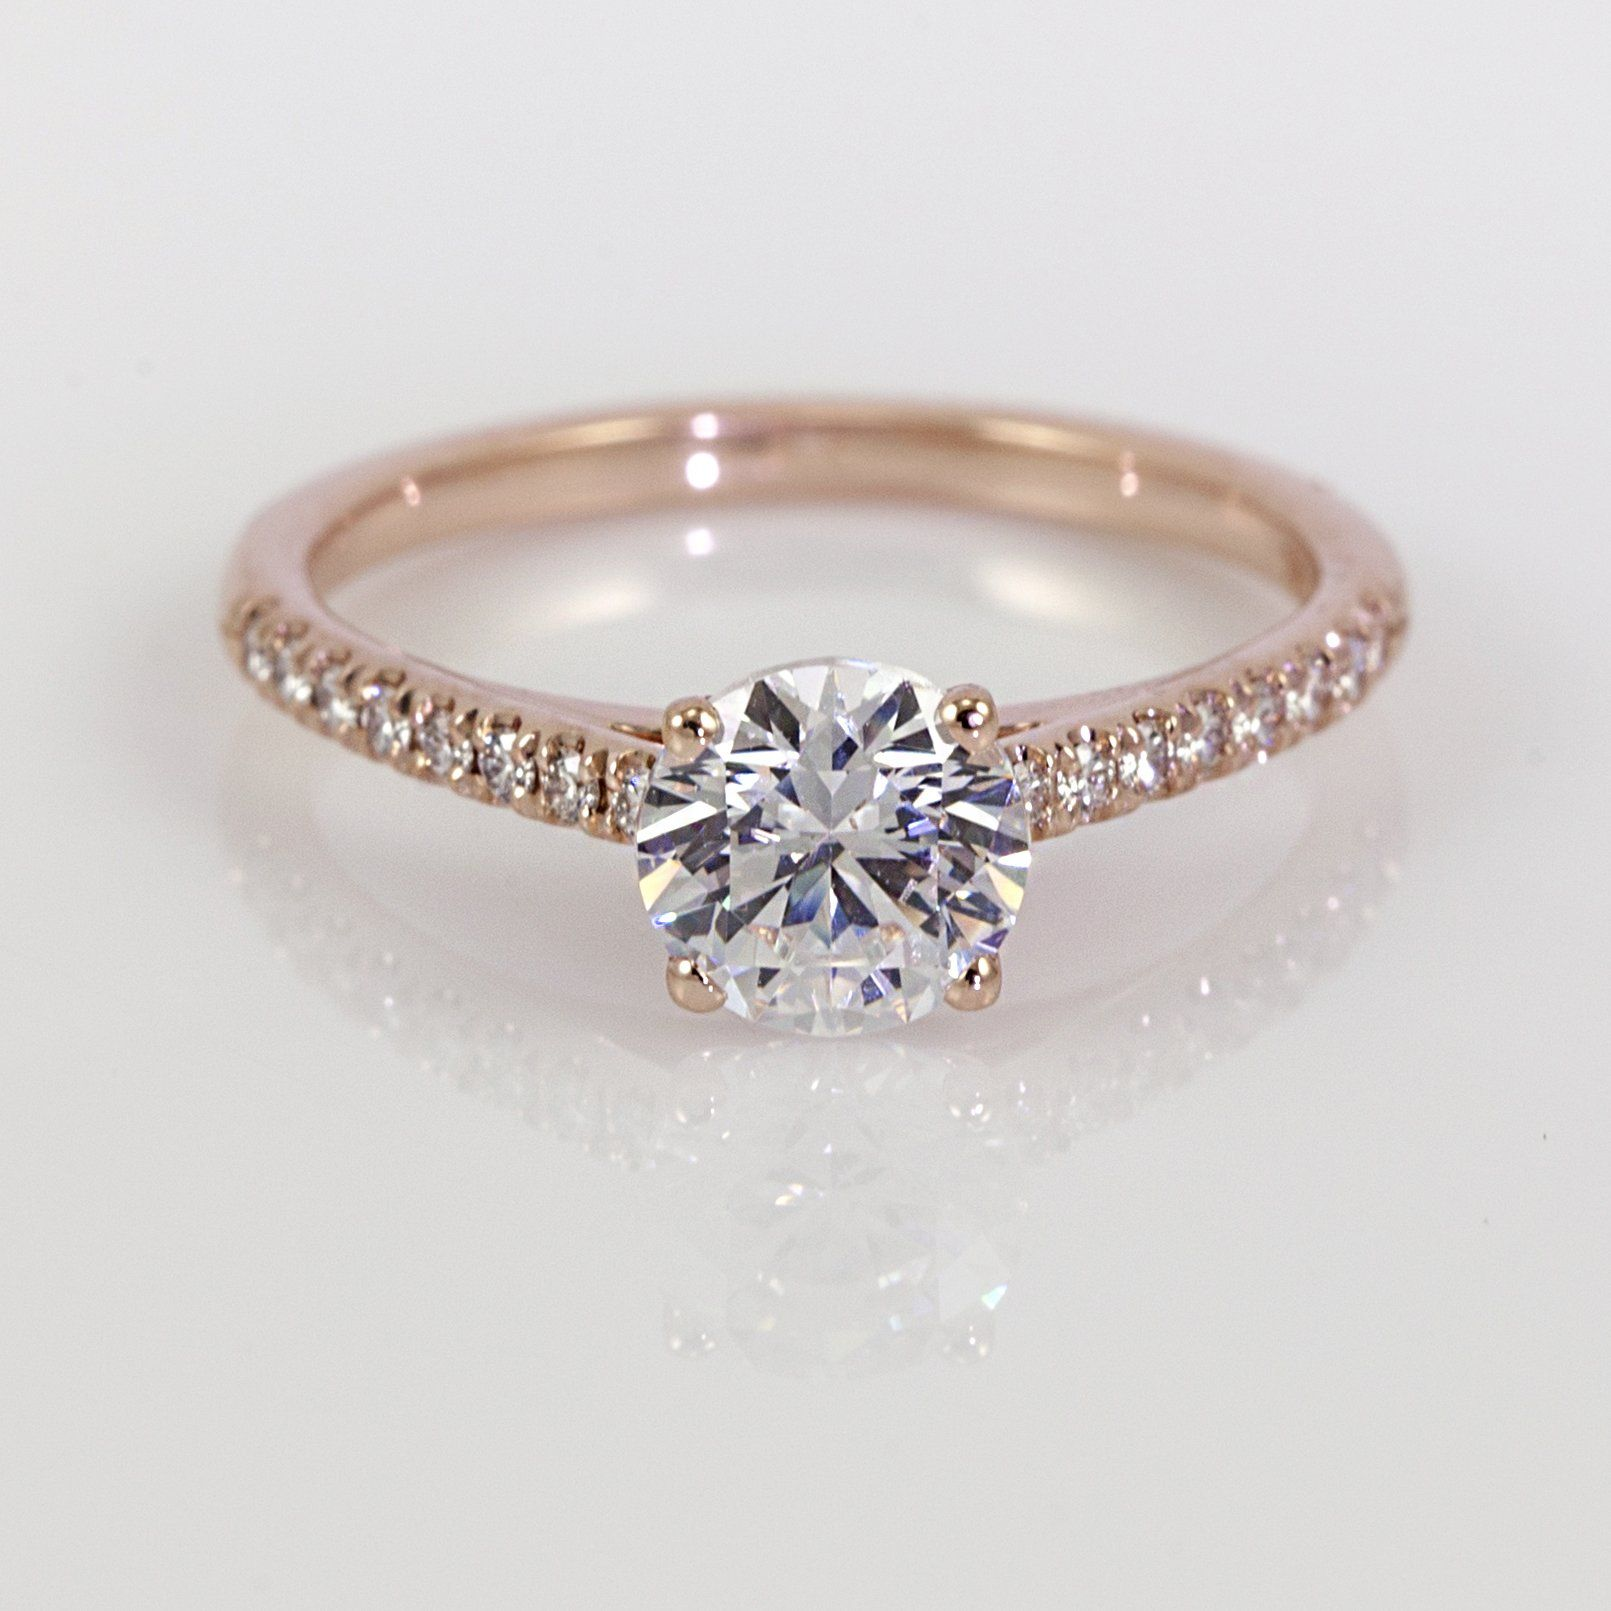 patterson mark media jewelry id home engagement markpattersonjewelry rings facebook